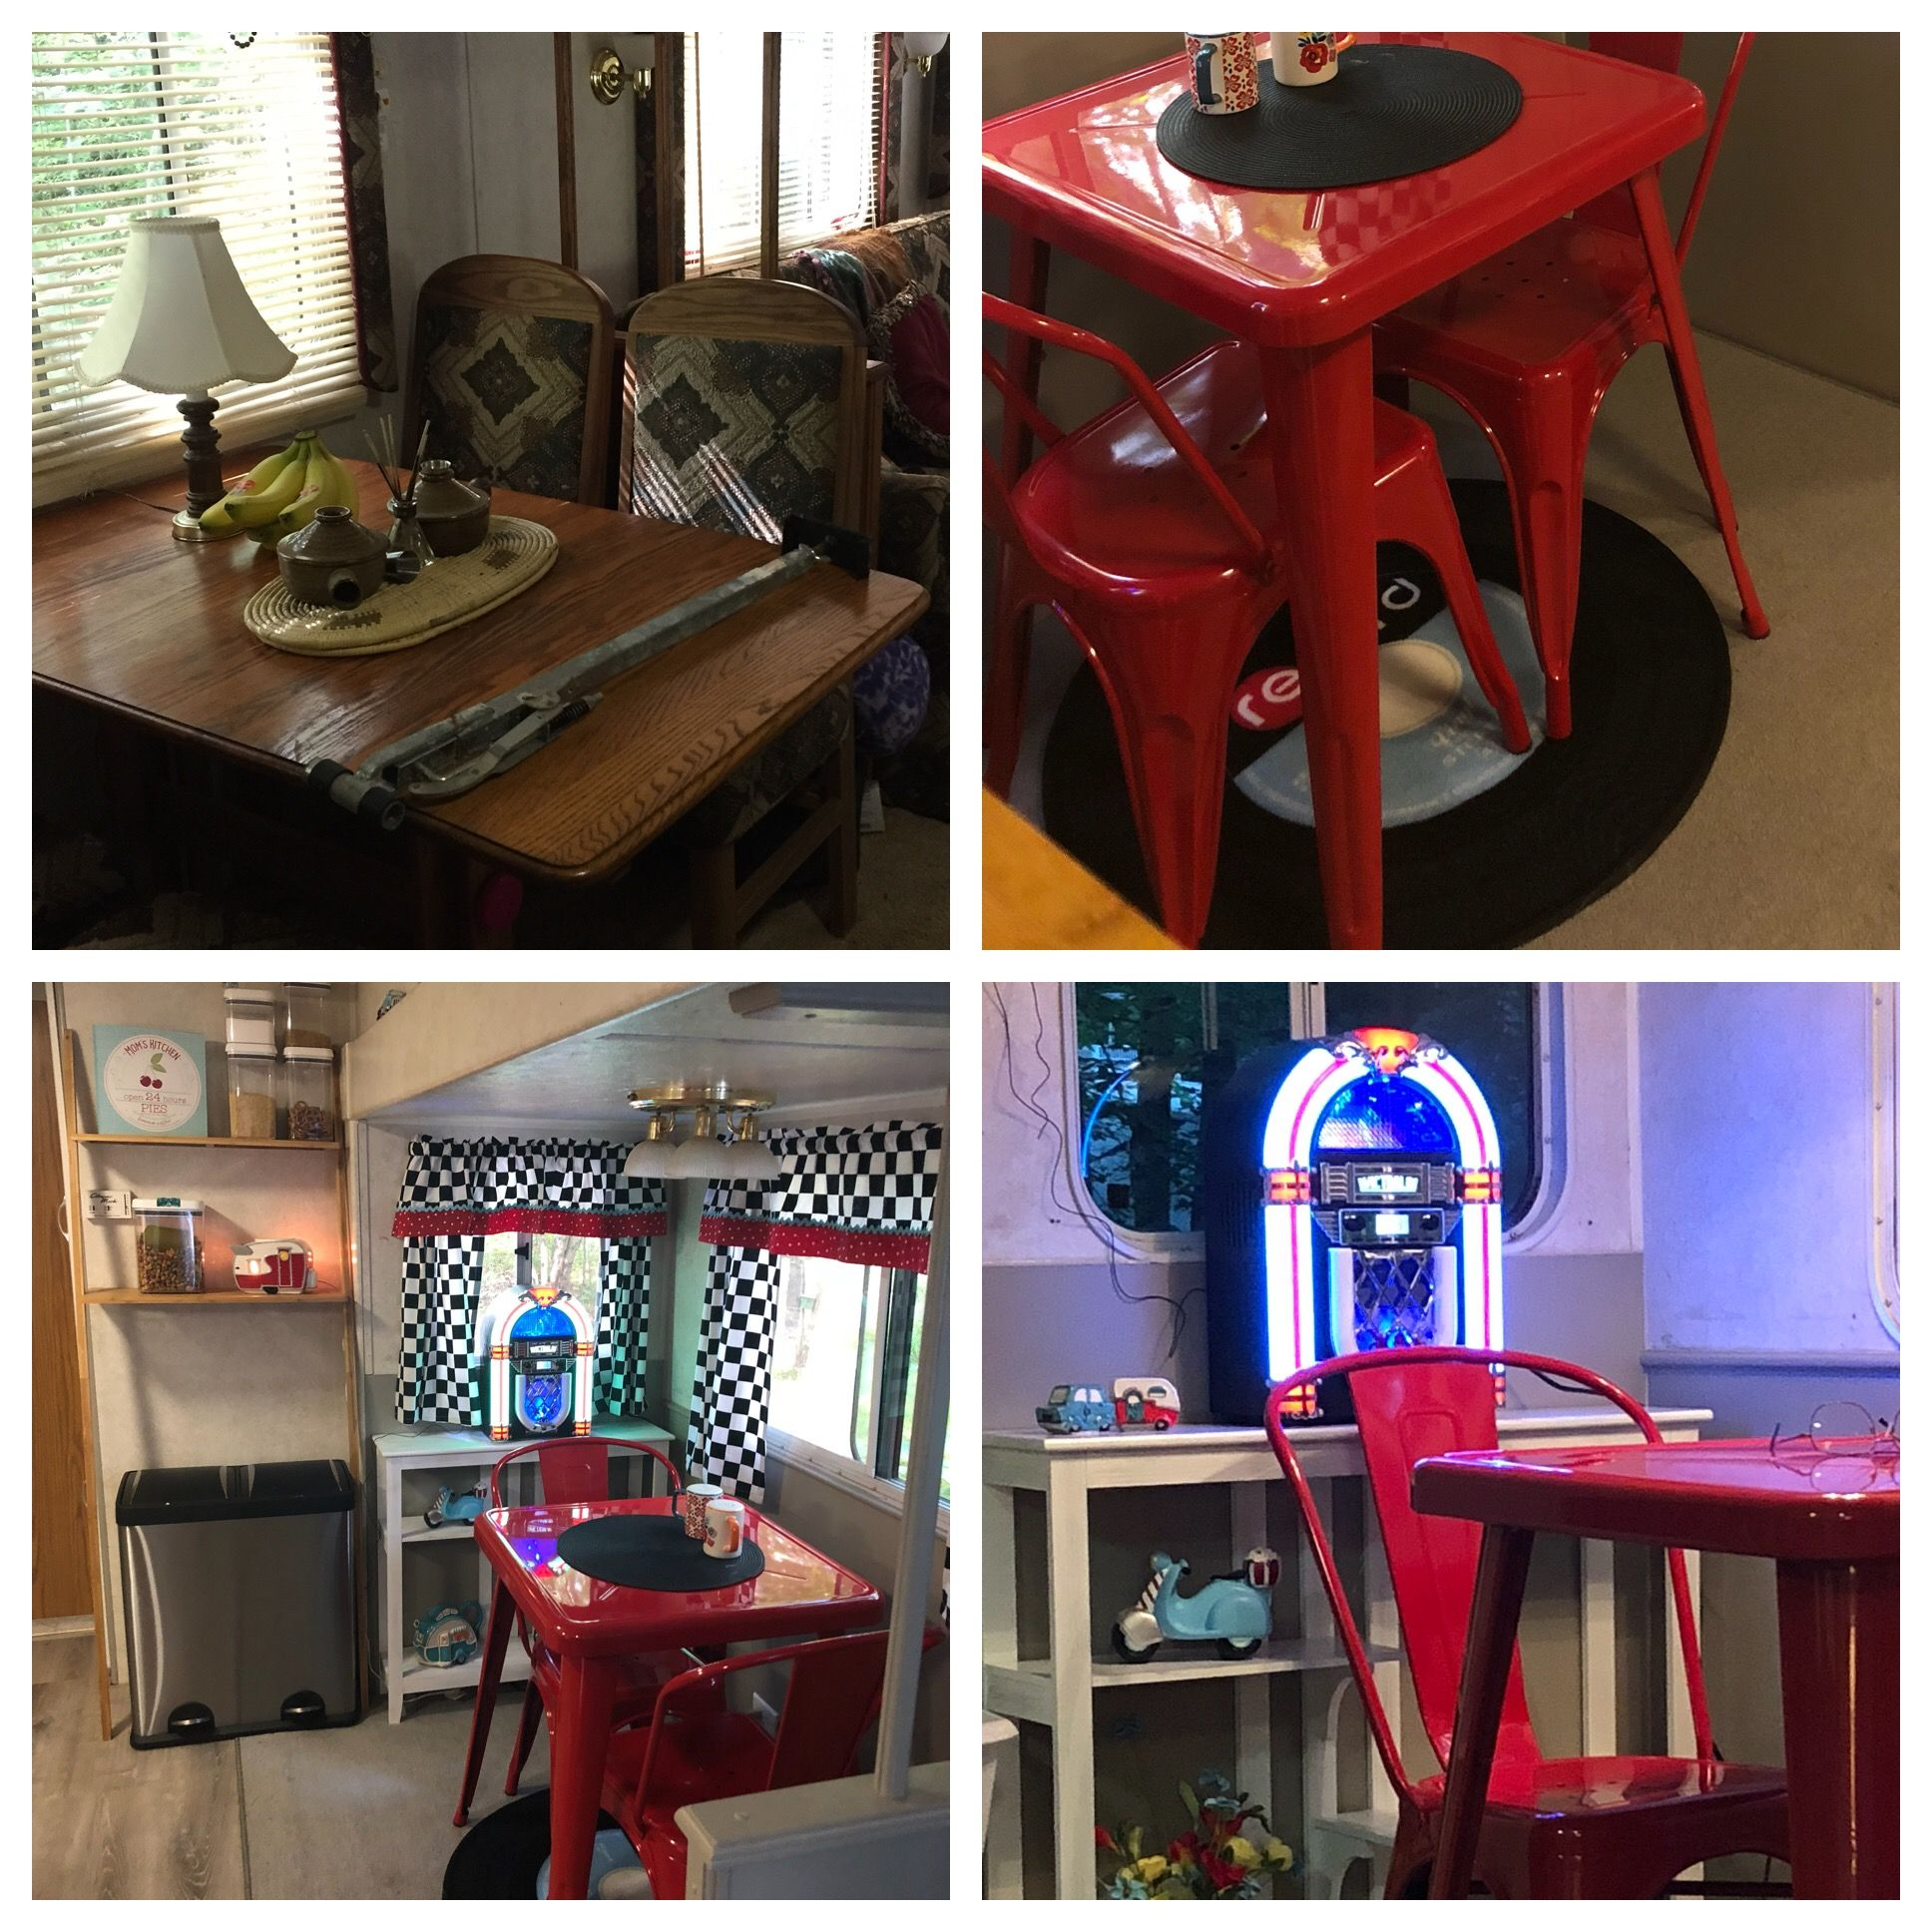 From drab to us diner for the camper dinette complete with